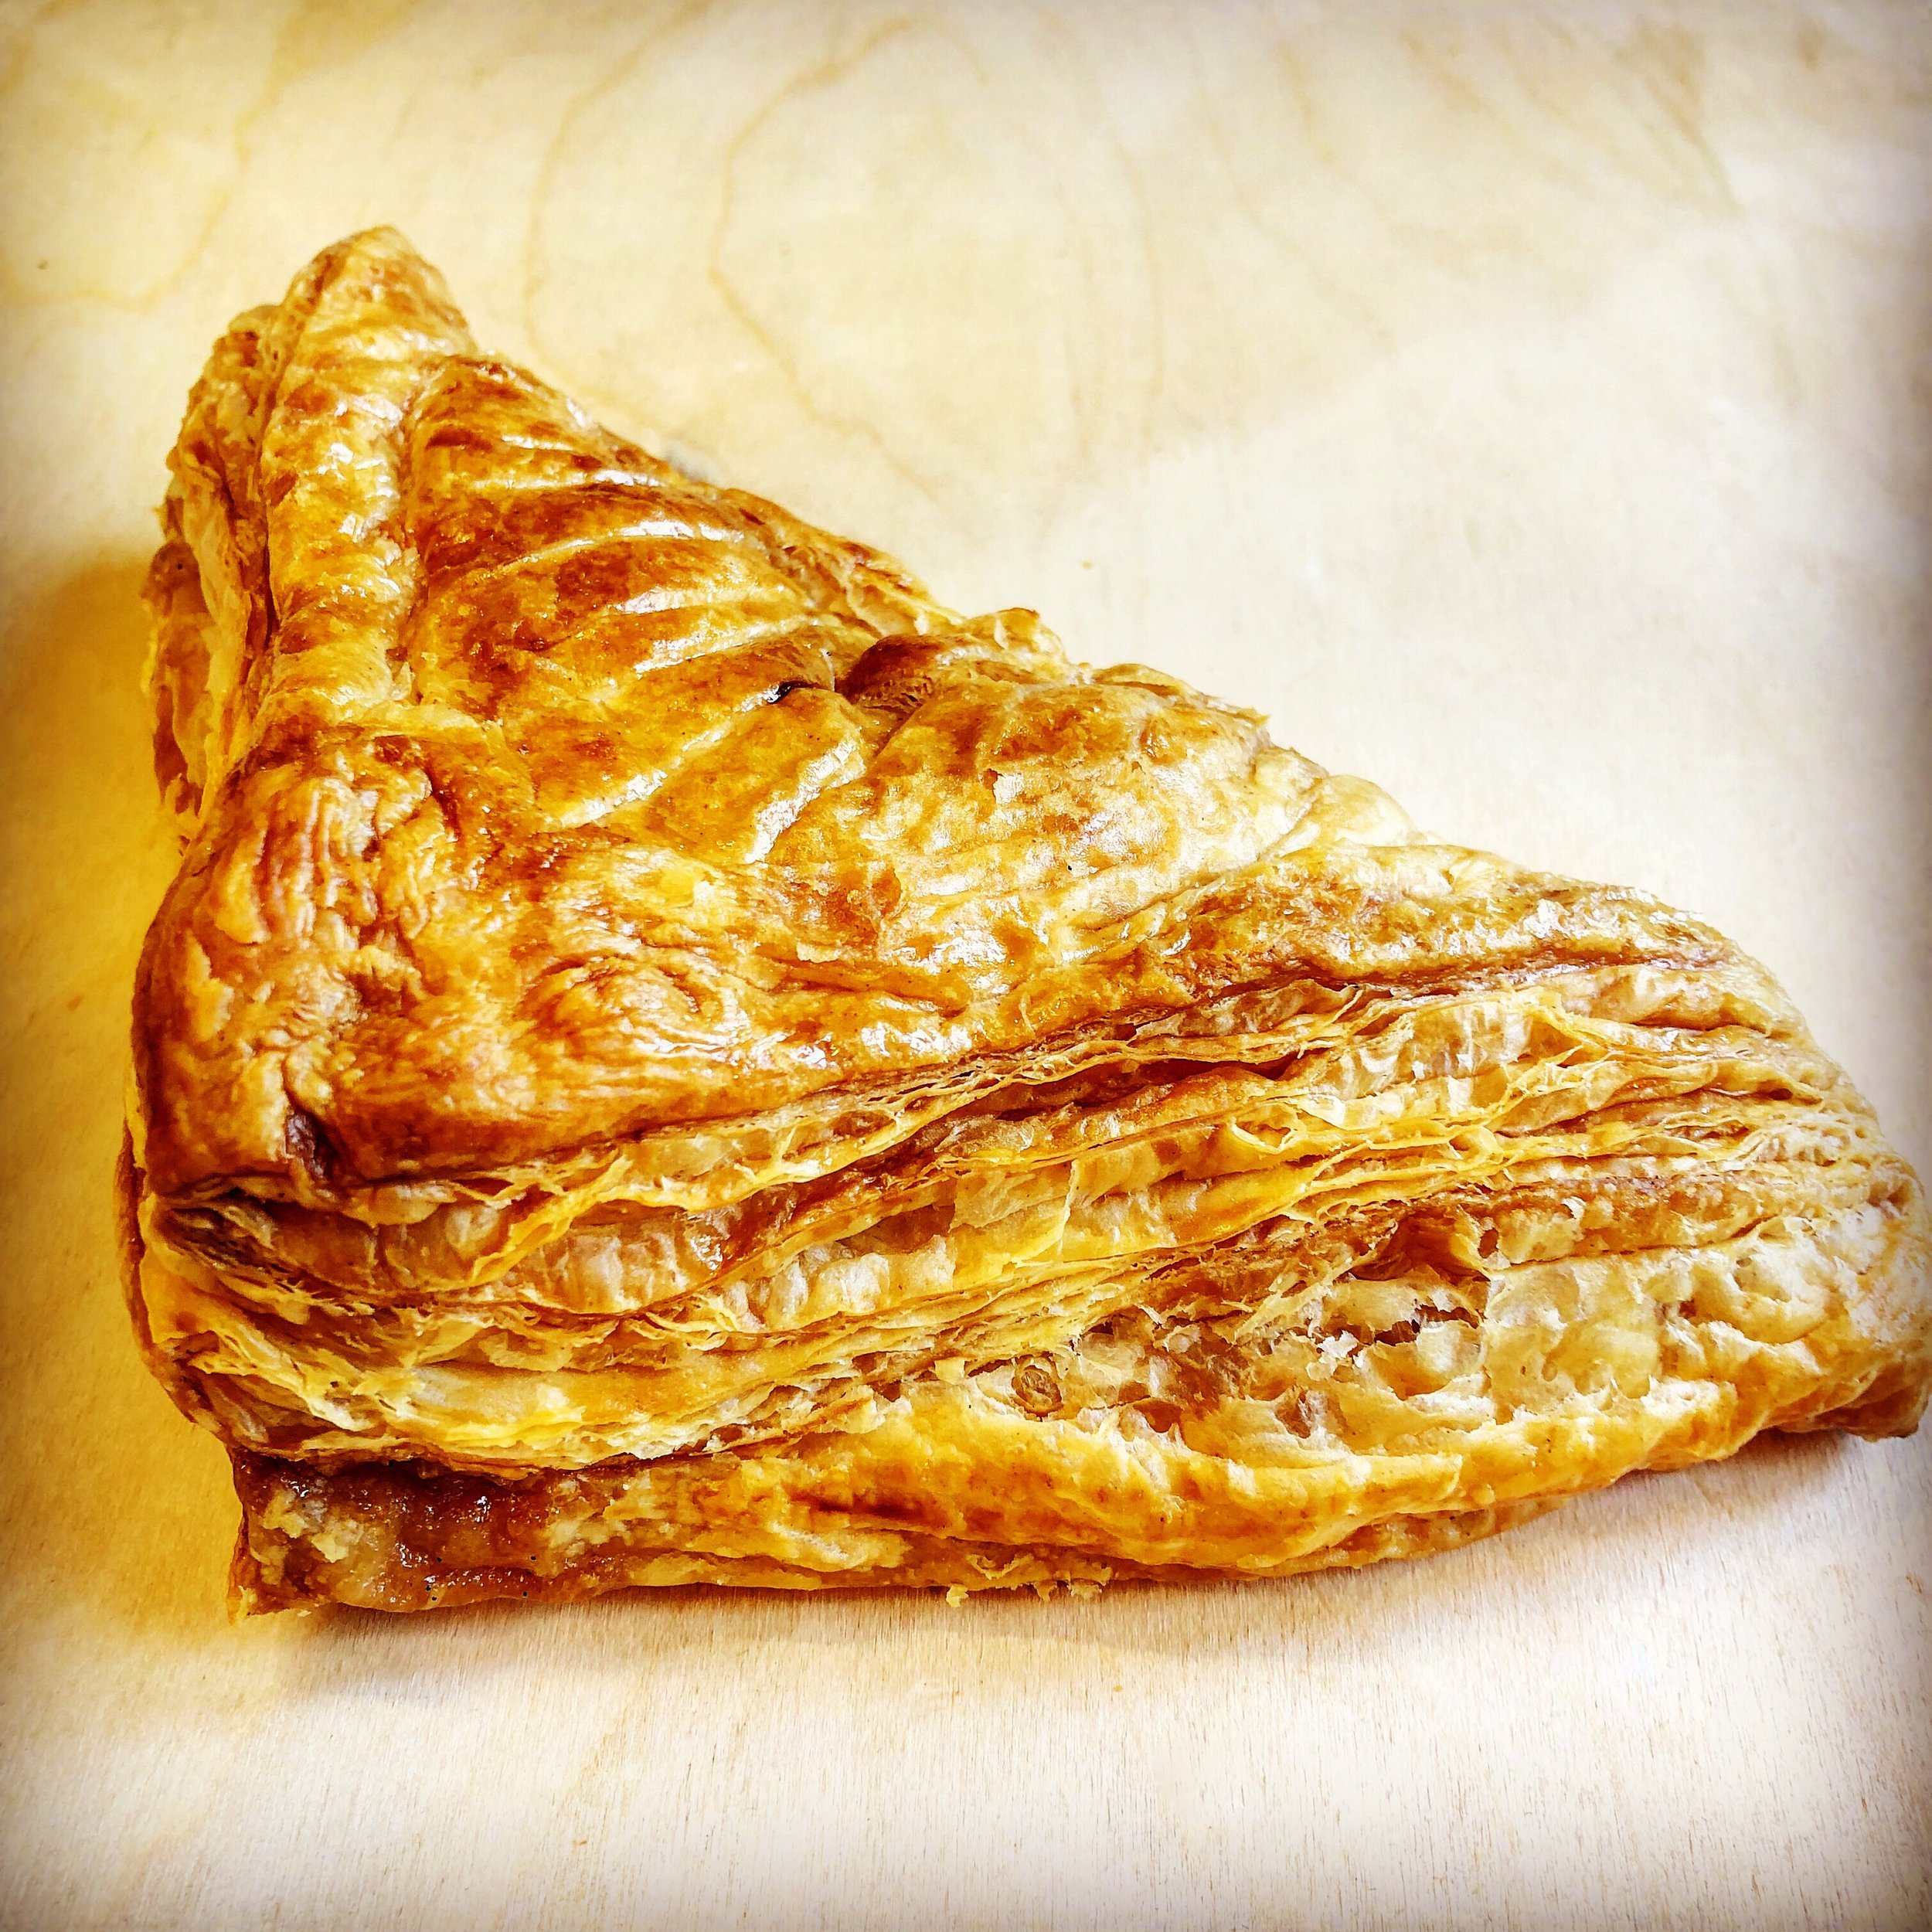 Apple & rhubarb turnover